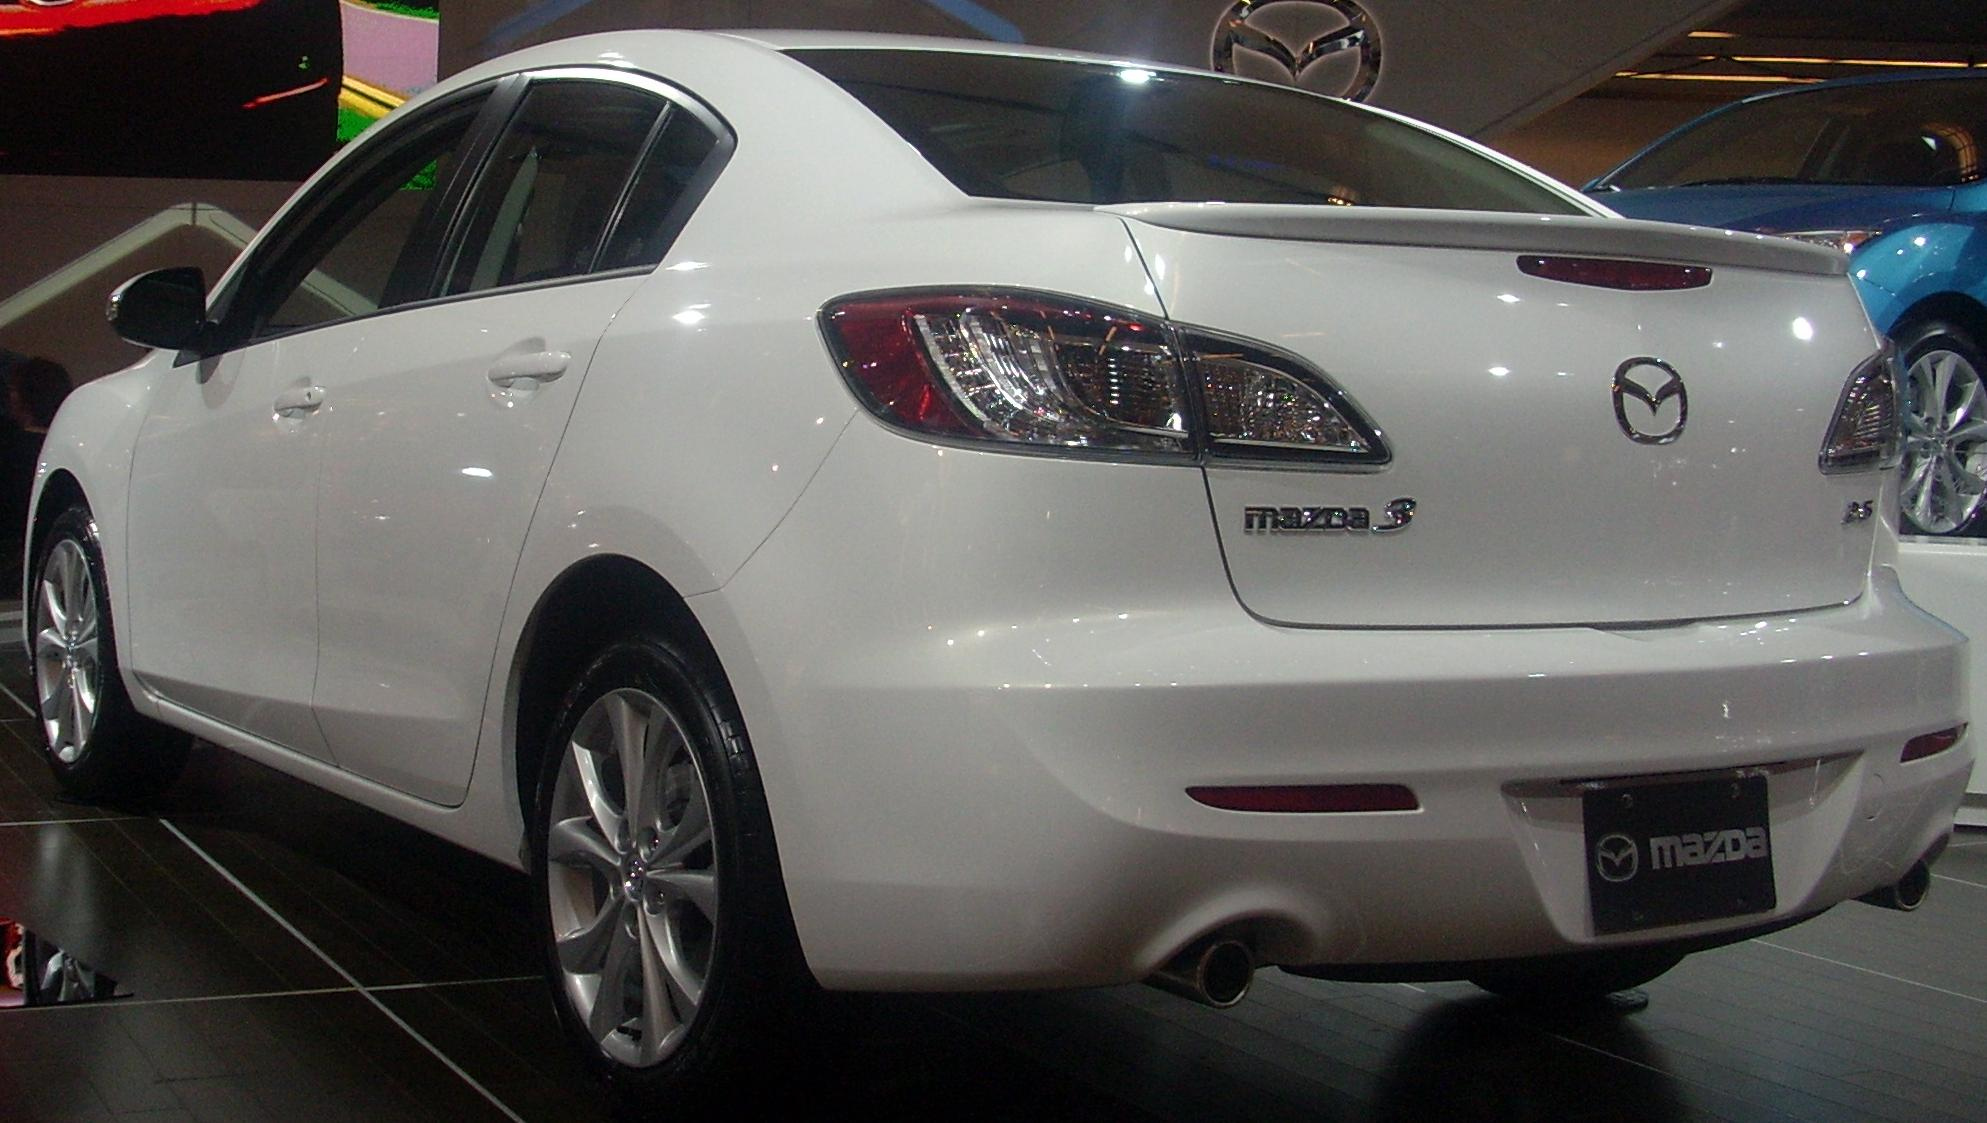 File:'10 Mazda3 2.5 Sedan (Rear, MIAS).JPG - Wikimedia Commons